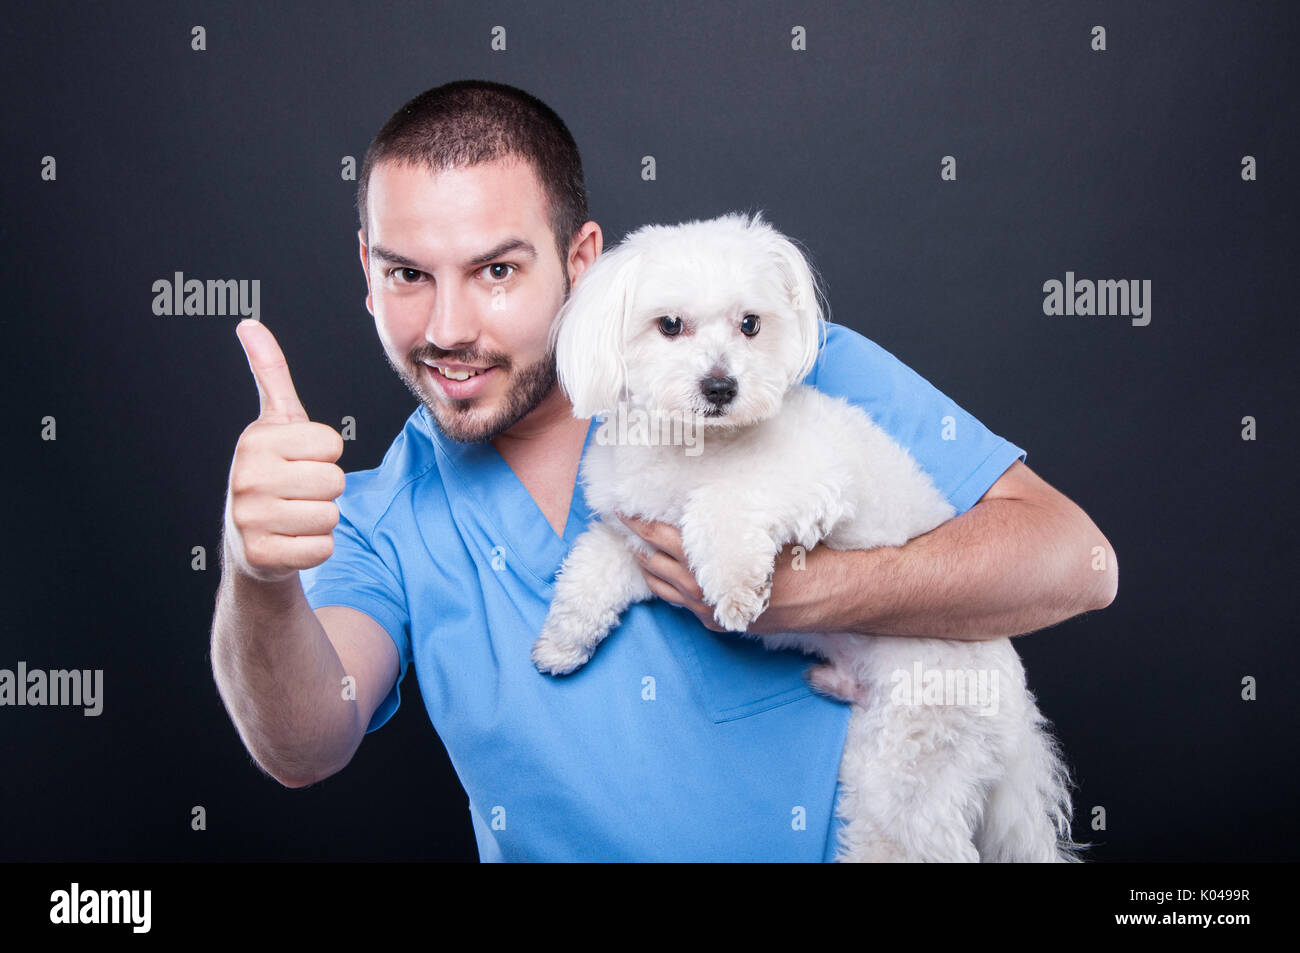 Veterinary wearing scrubs holding cute white dog showing like gesture and smiling on black background - Stock Image